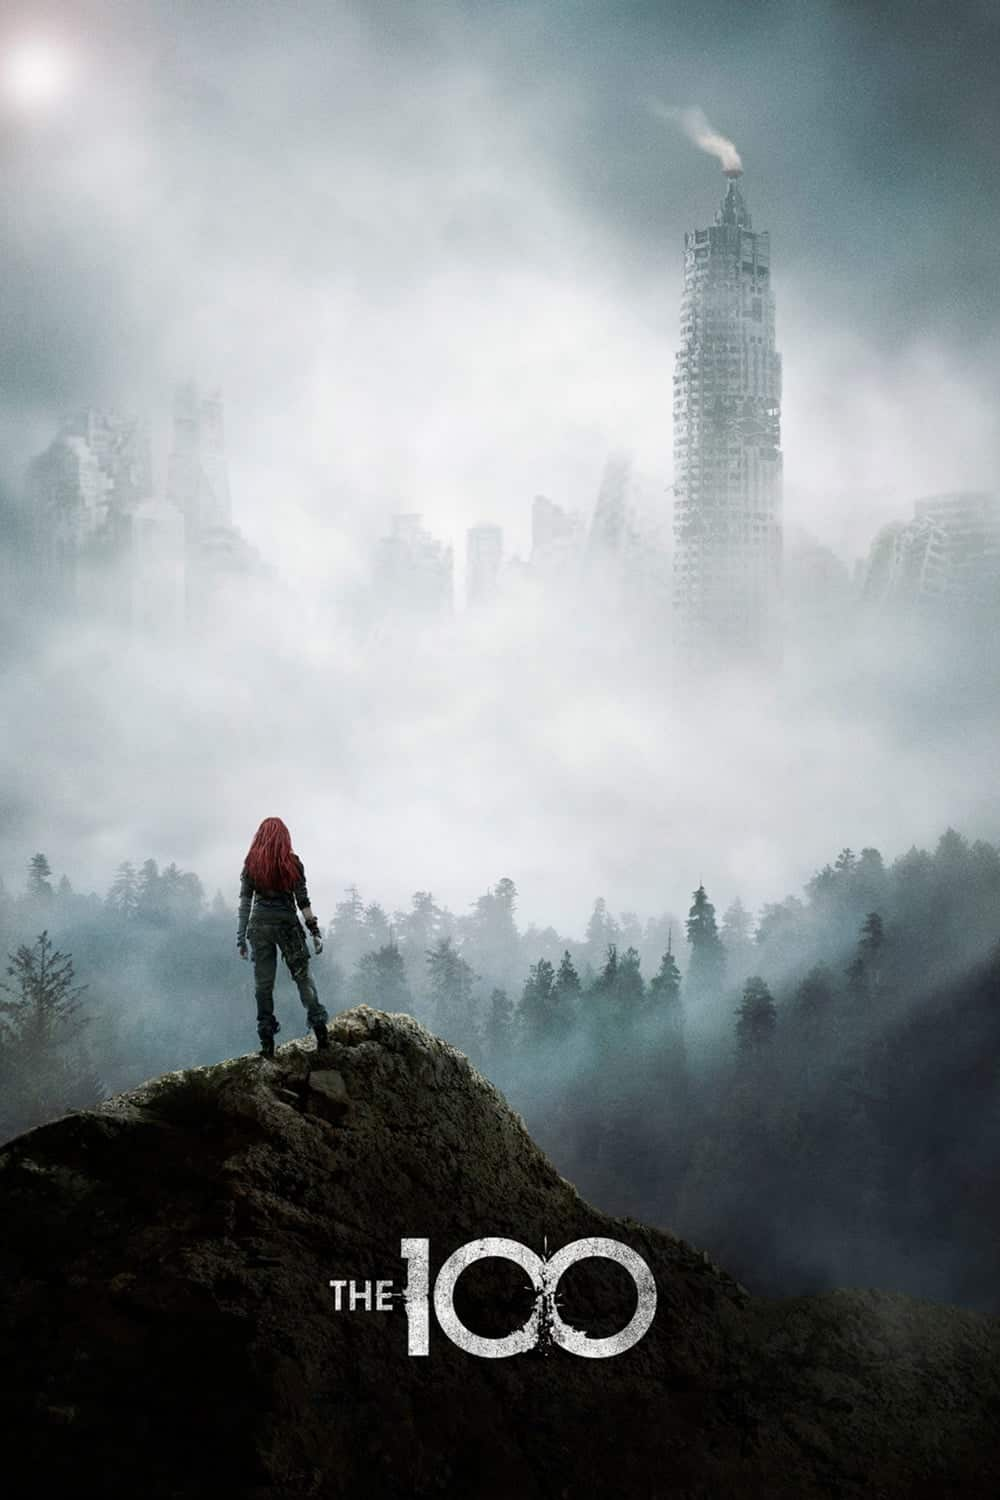 The 100, 2014